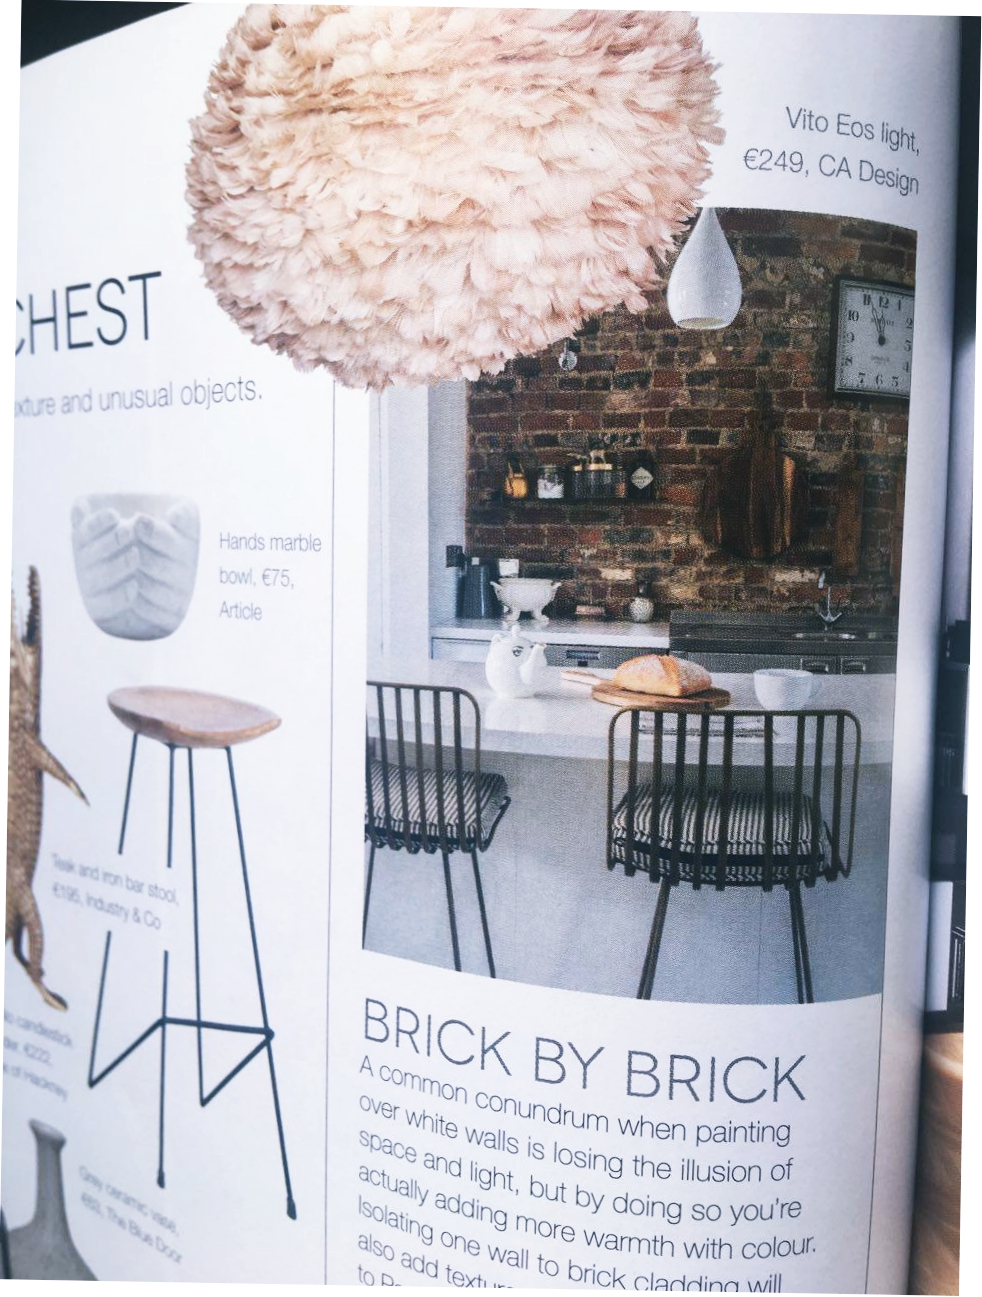 And last ... - but oh-so-not least, one of our ethereal,feathery EOS lights adds a touch of texture to this page, just as it does to any room. The Vita Copenhagen collection continues to make us smile. And you too.